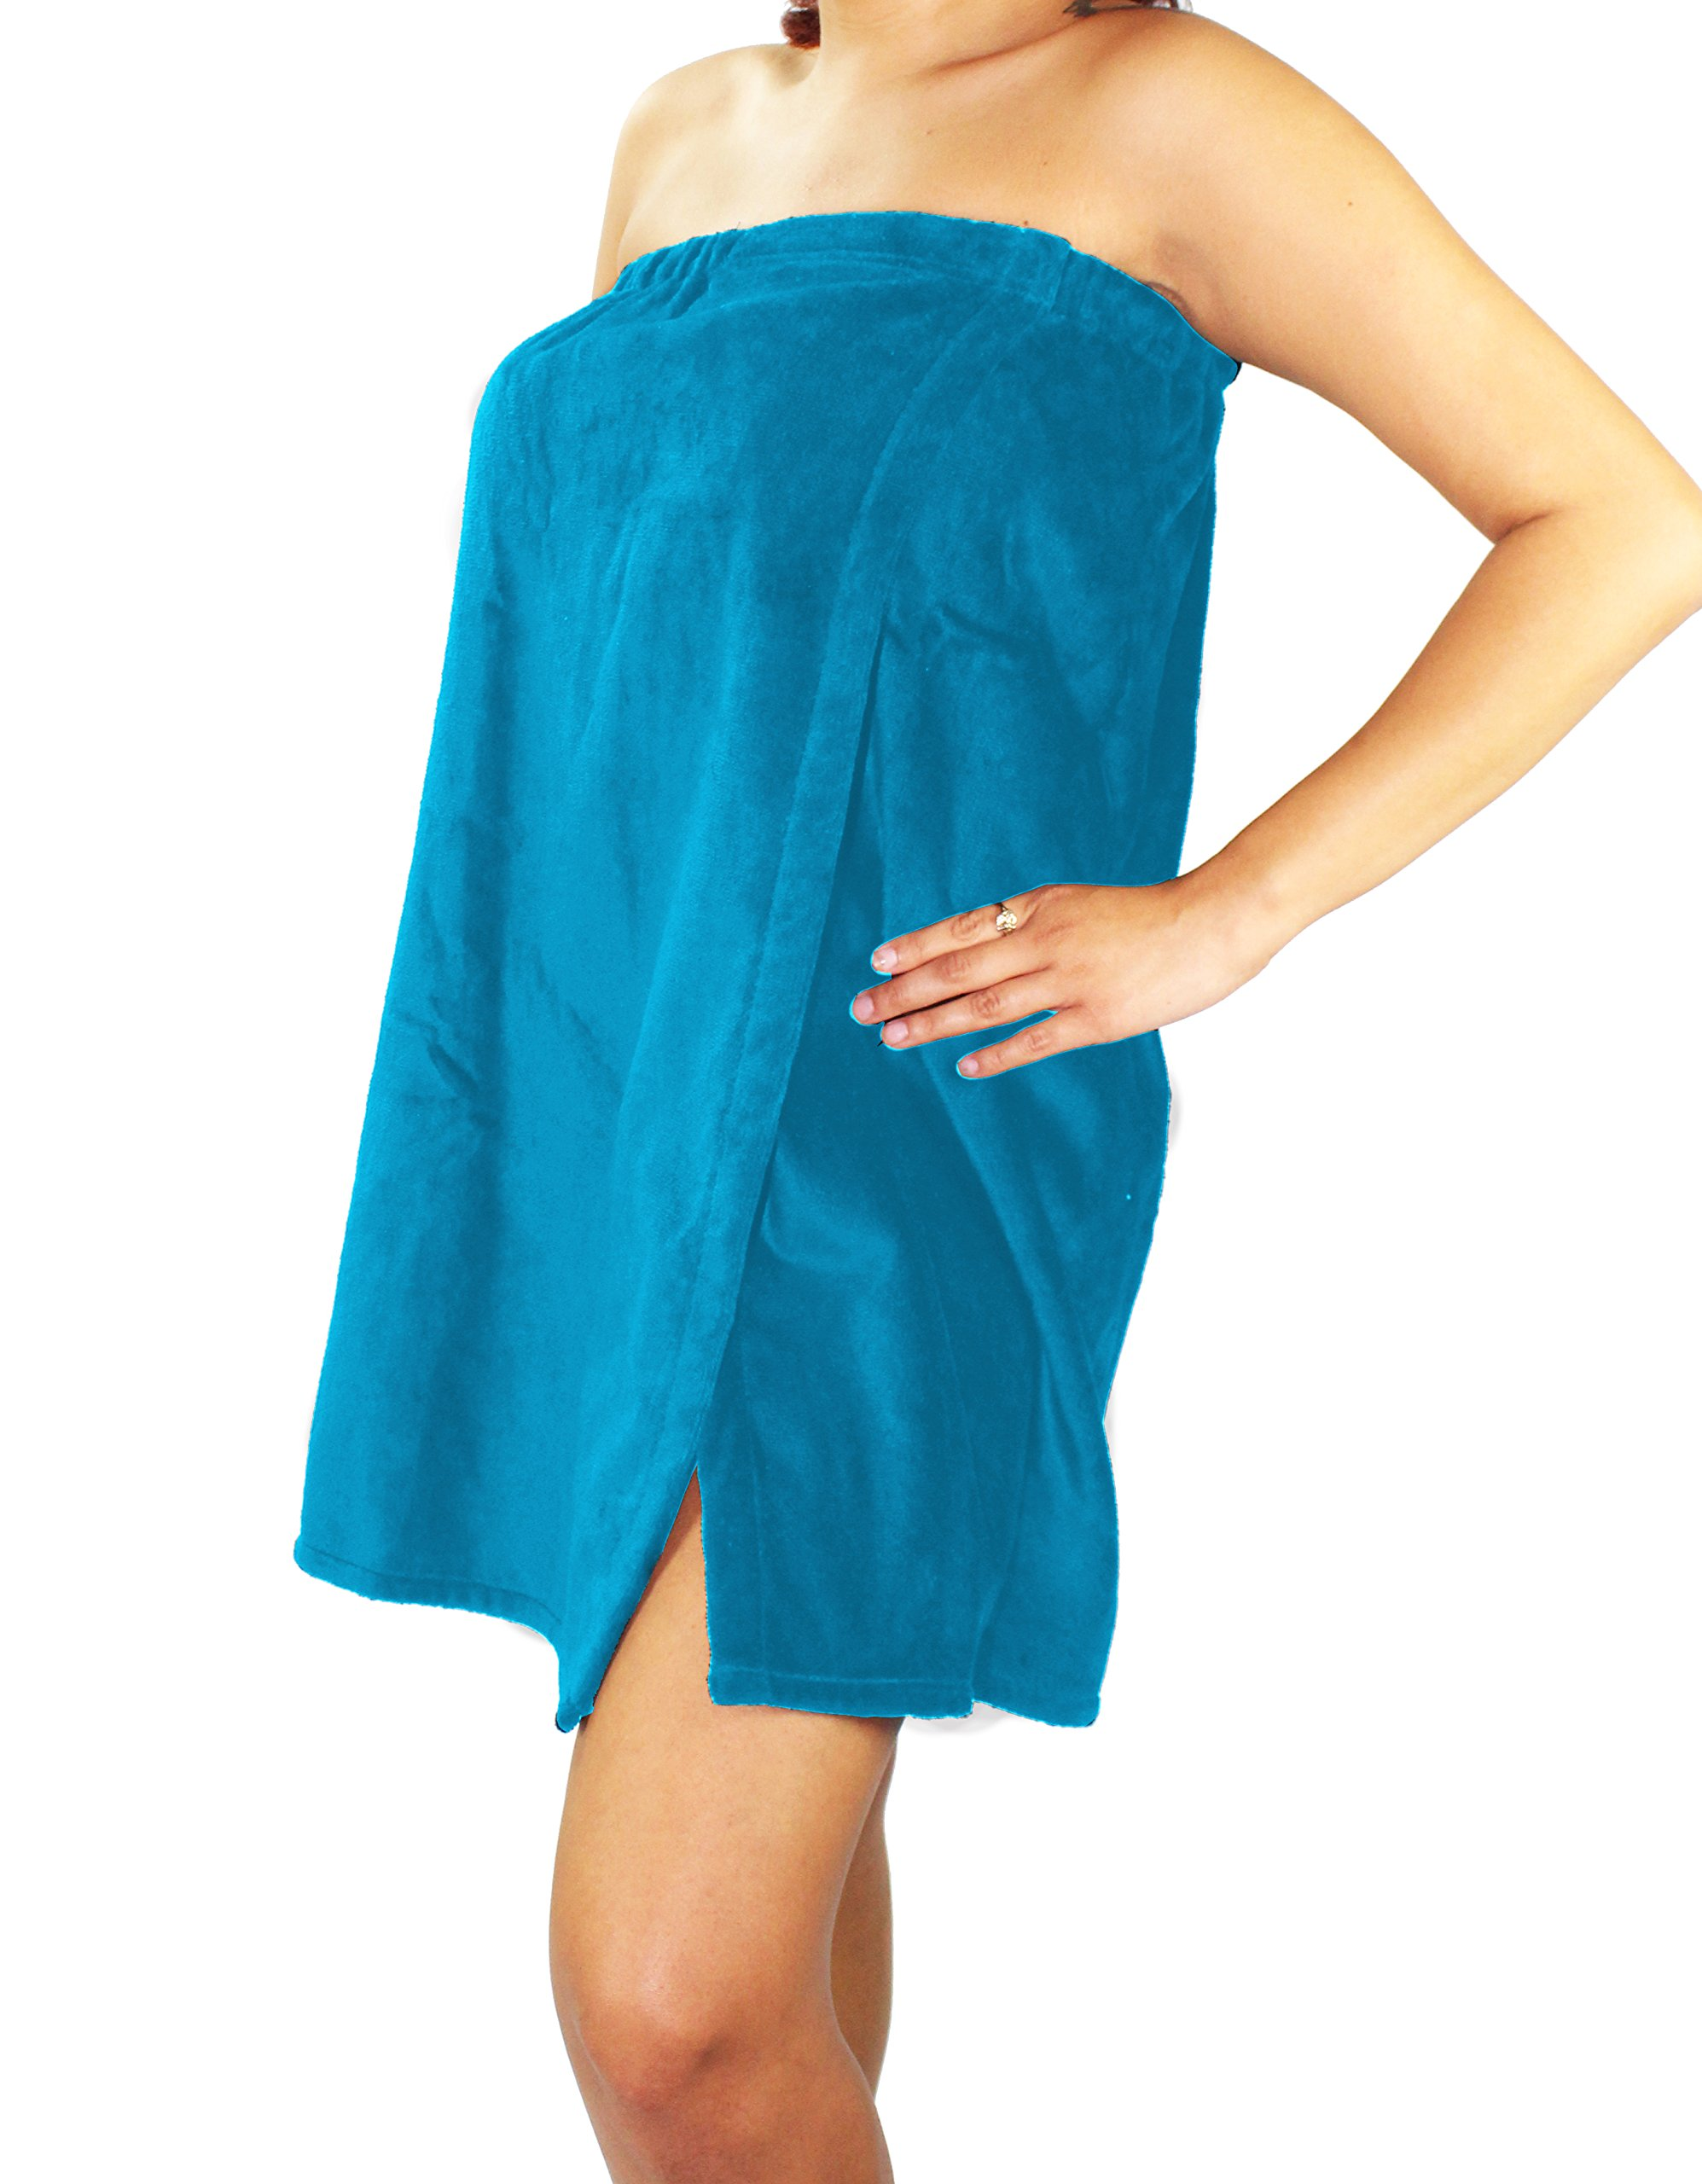 Sanders Classics 25'' Terry Towel Wrap - Turquoise